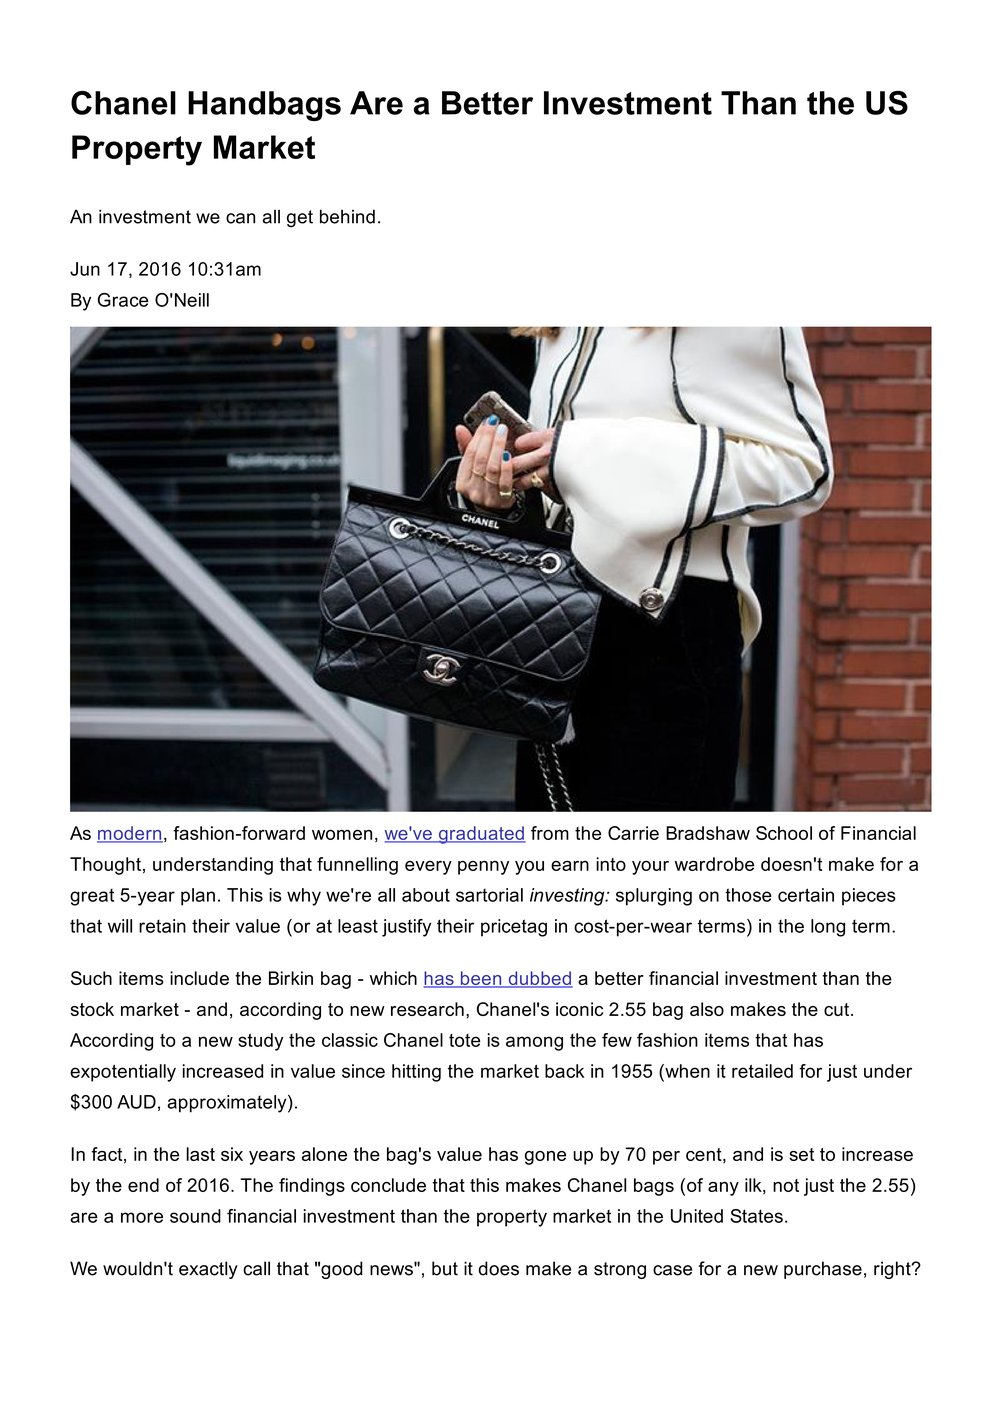 Chanel Handbags Are a Better Investment Than the US Property Market _ Harper's BAZAAR.jpg